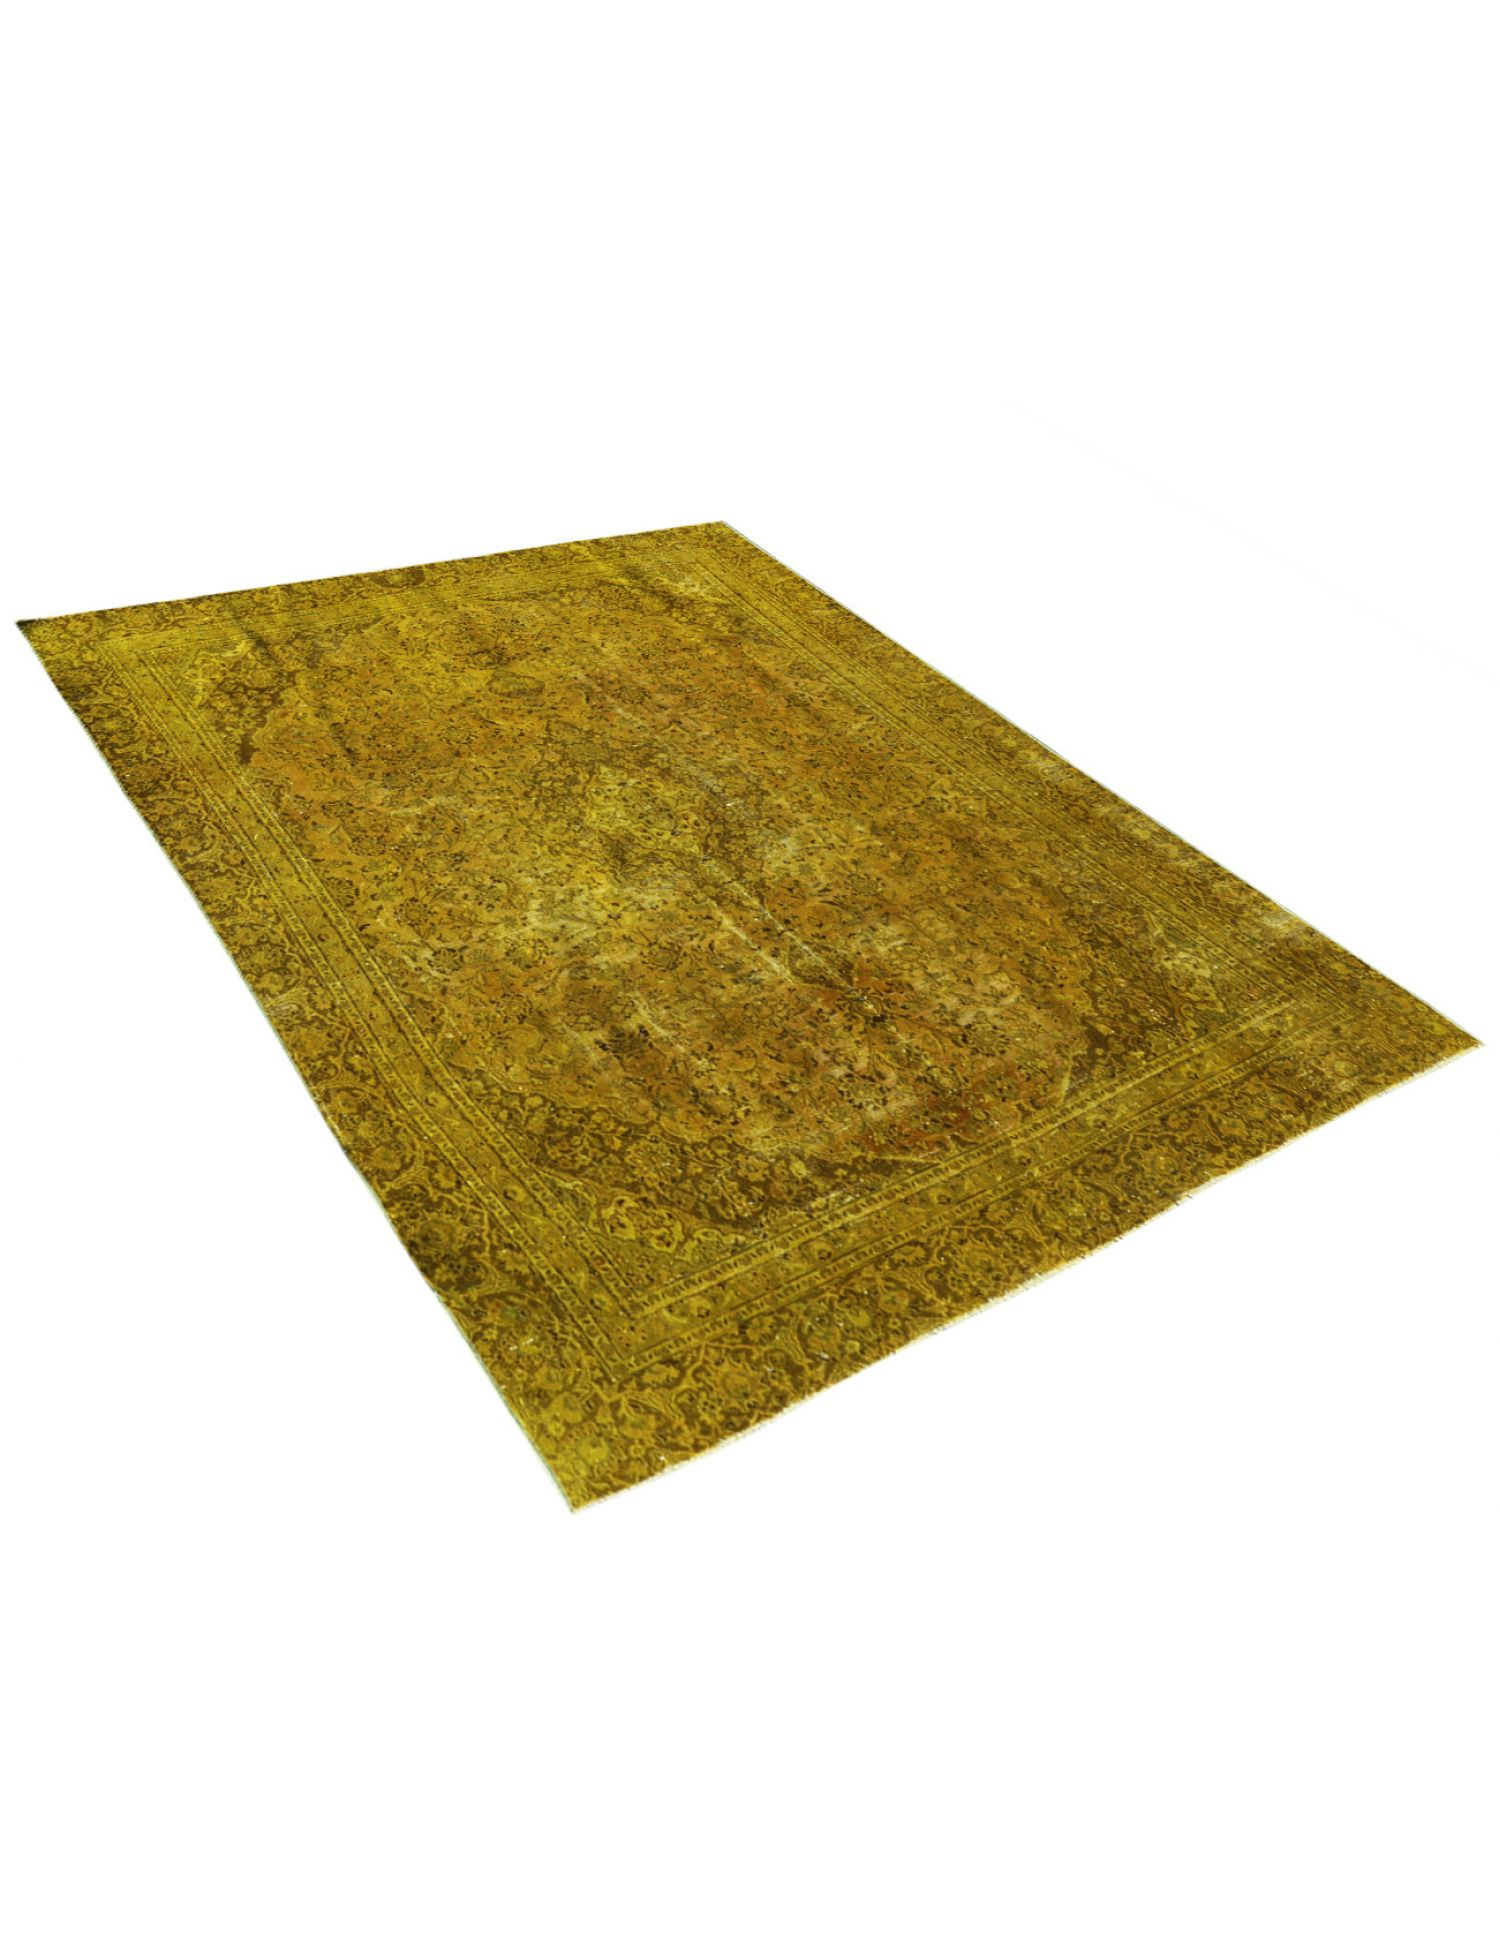 Vintage Carpet  yellow <br/>331 x 253 cm